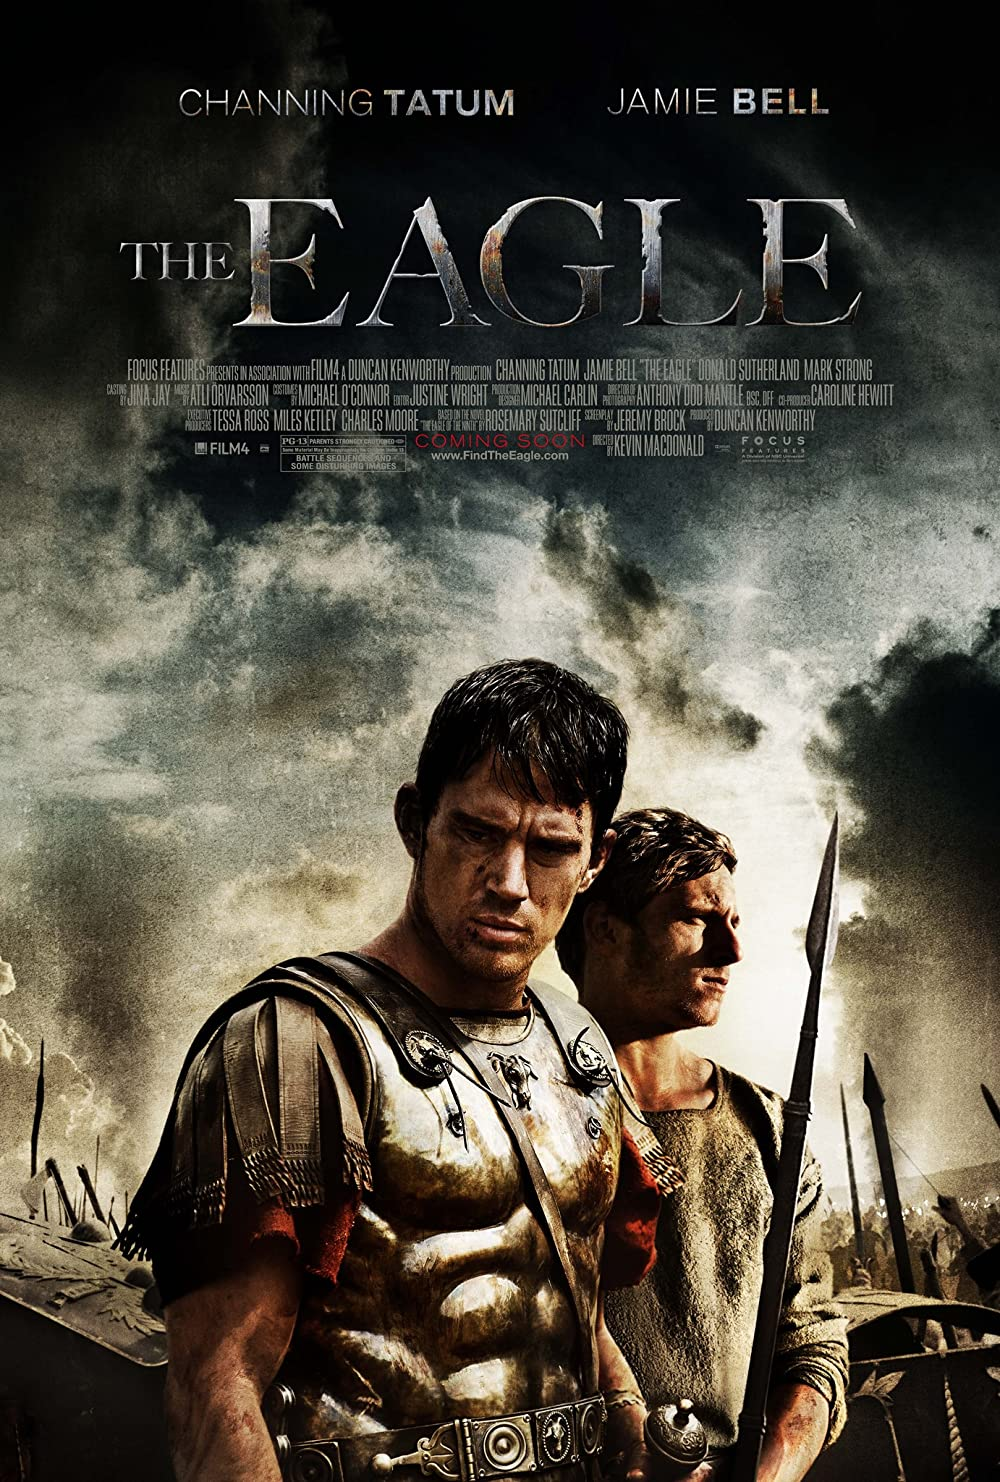 The Eagle 2011 Hindi Dual Audio 1080p BluRay ESubs 1.7GB x264 AAC